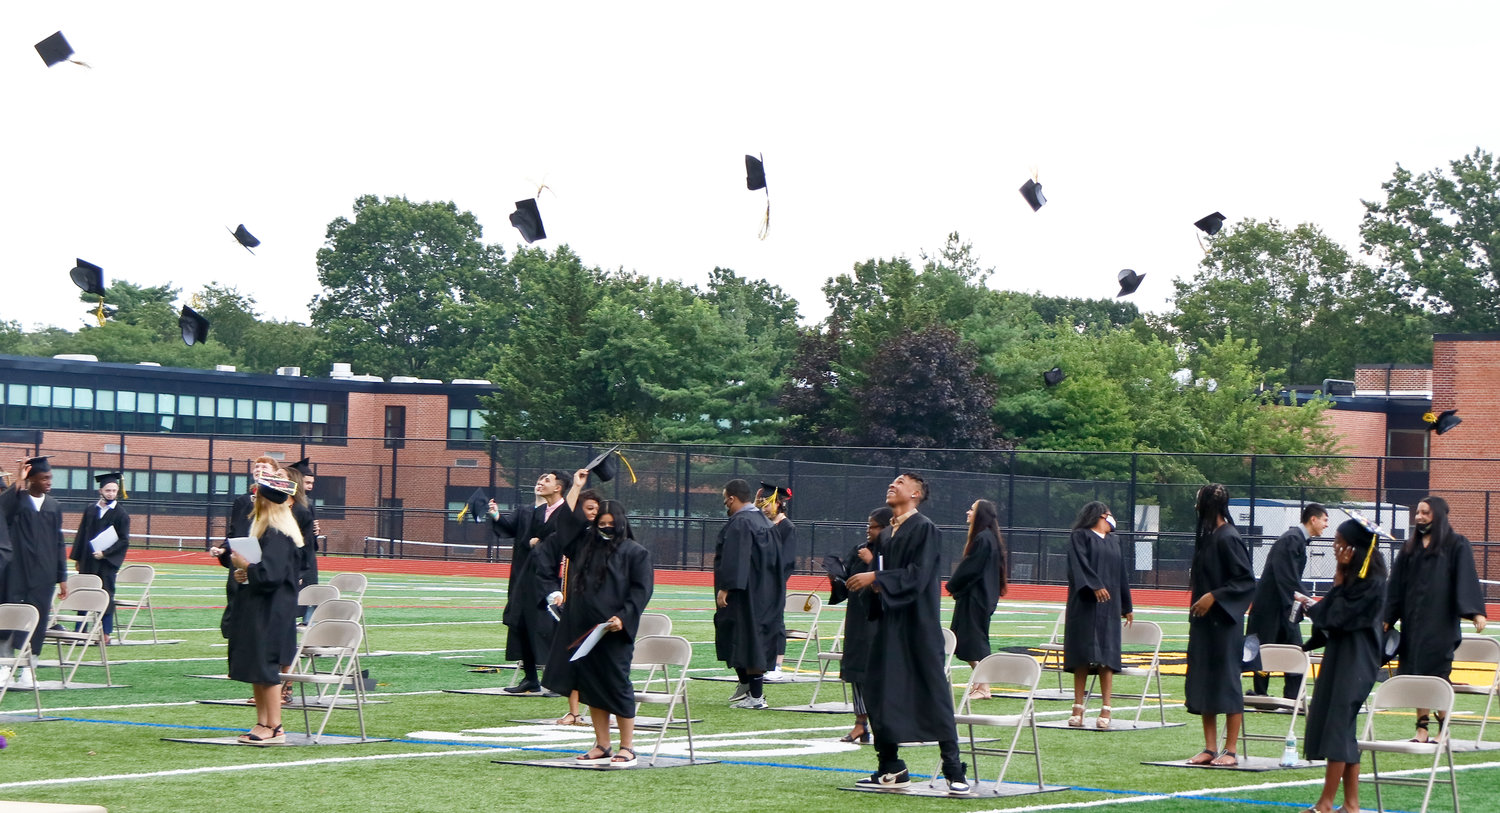 West Hempstead High School's class of 2020 tossed their mortarboards during their annual graduation ceremony on Aug. 1.